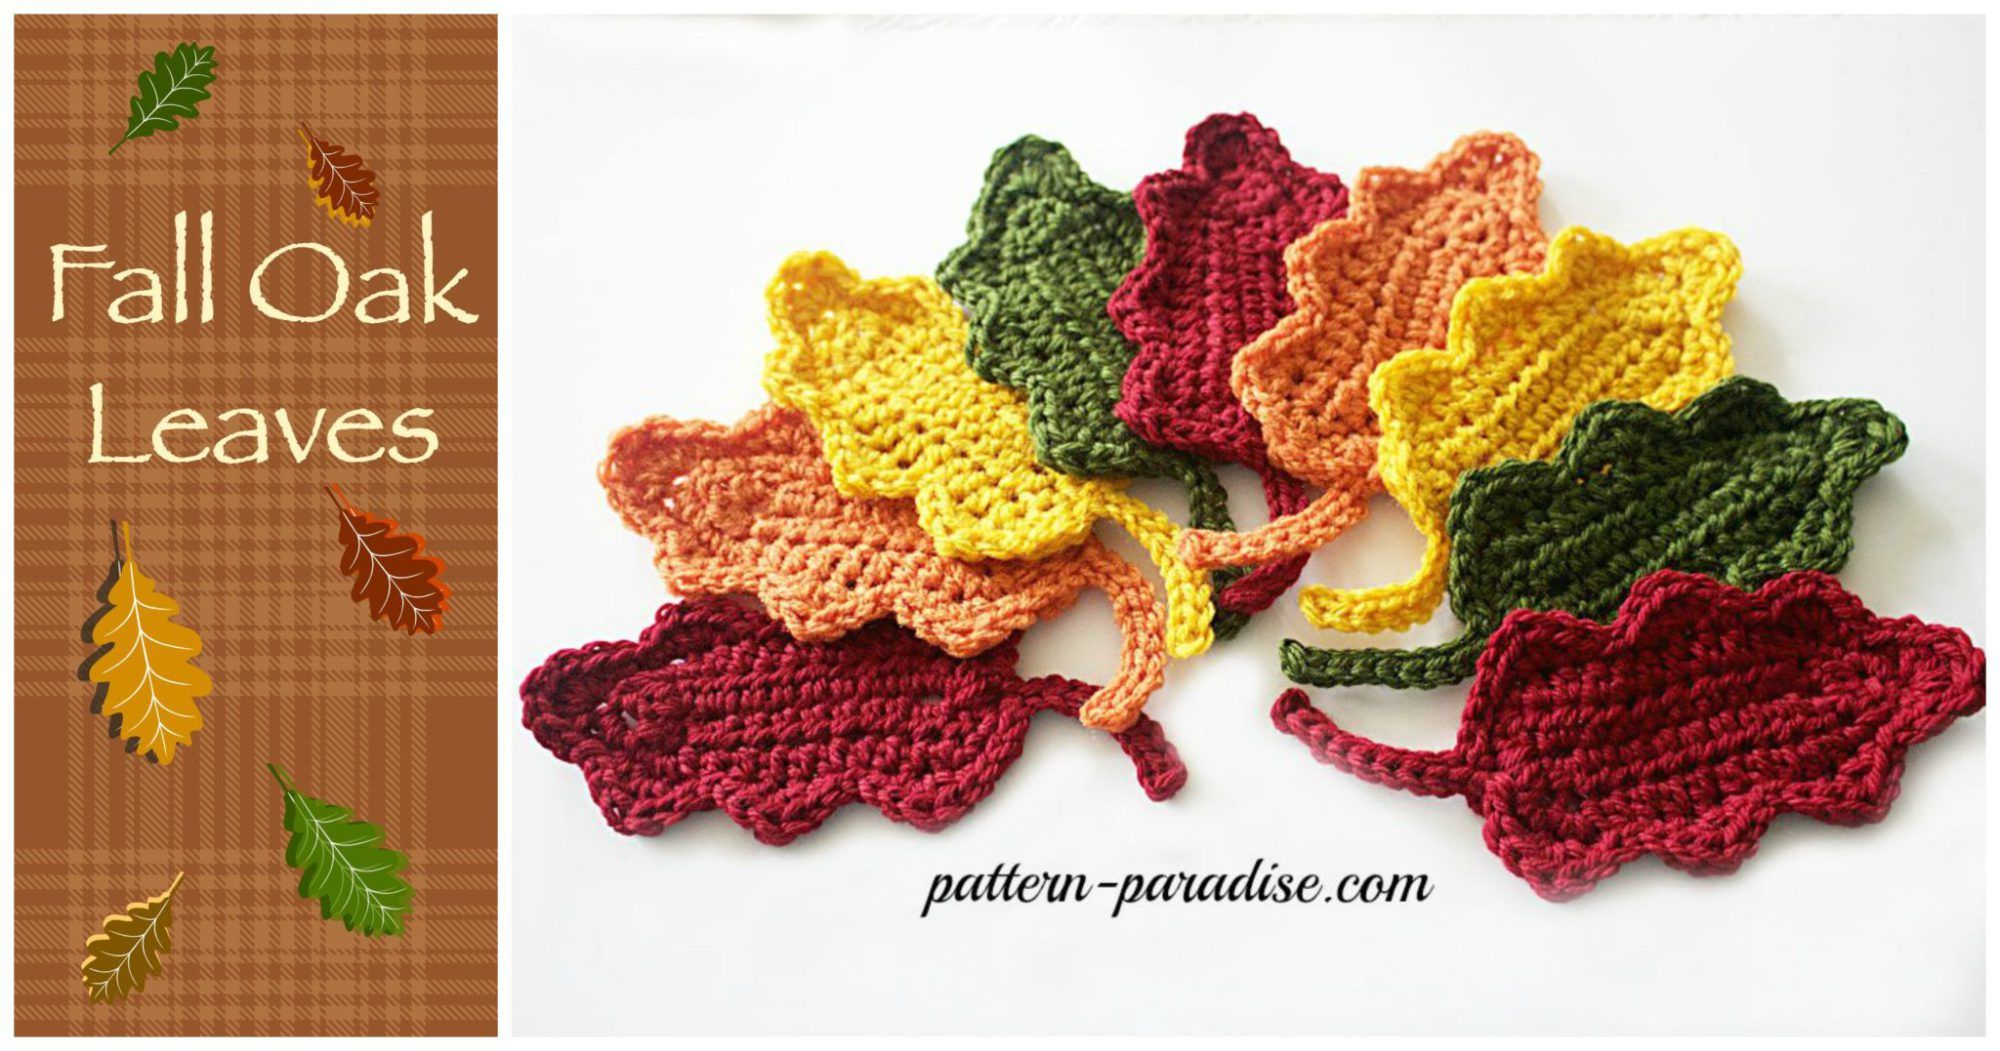 Fall oak leaves by pattern paradise crochetother holidays free crochet pattern fall oak leaves smaller ones bankloansurffo Images